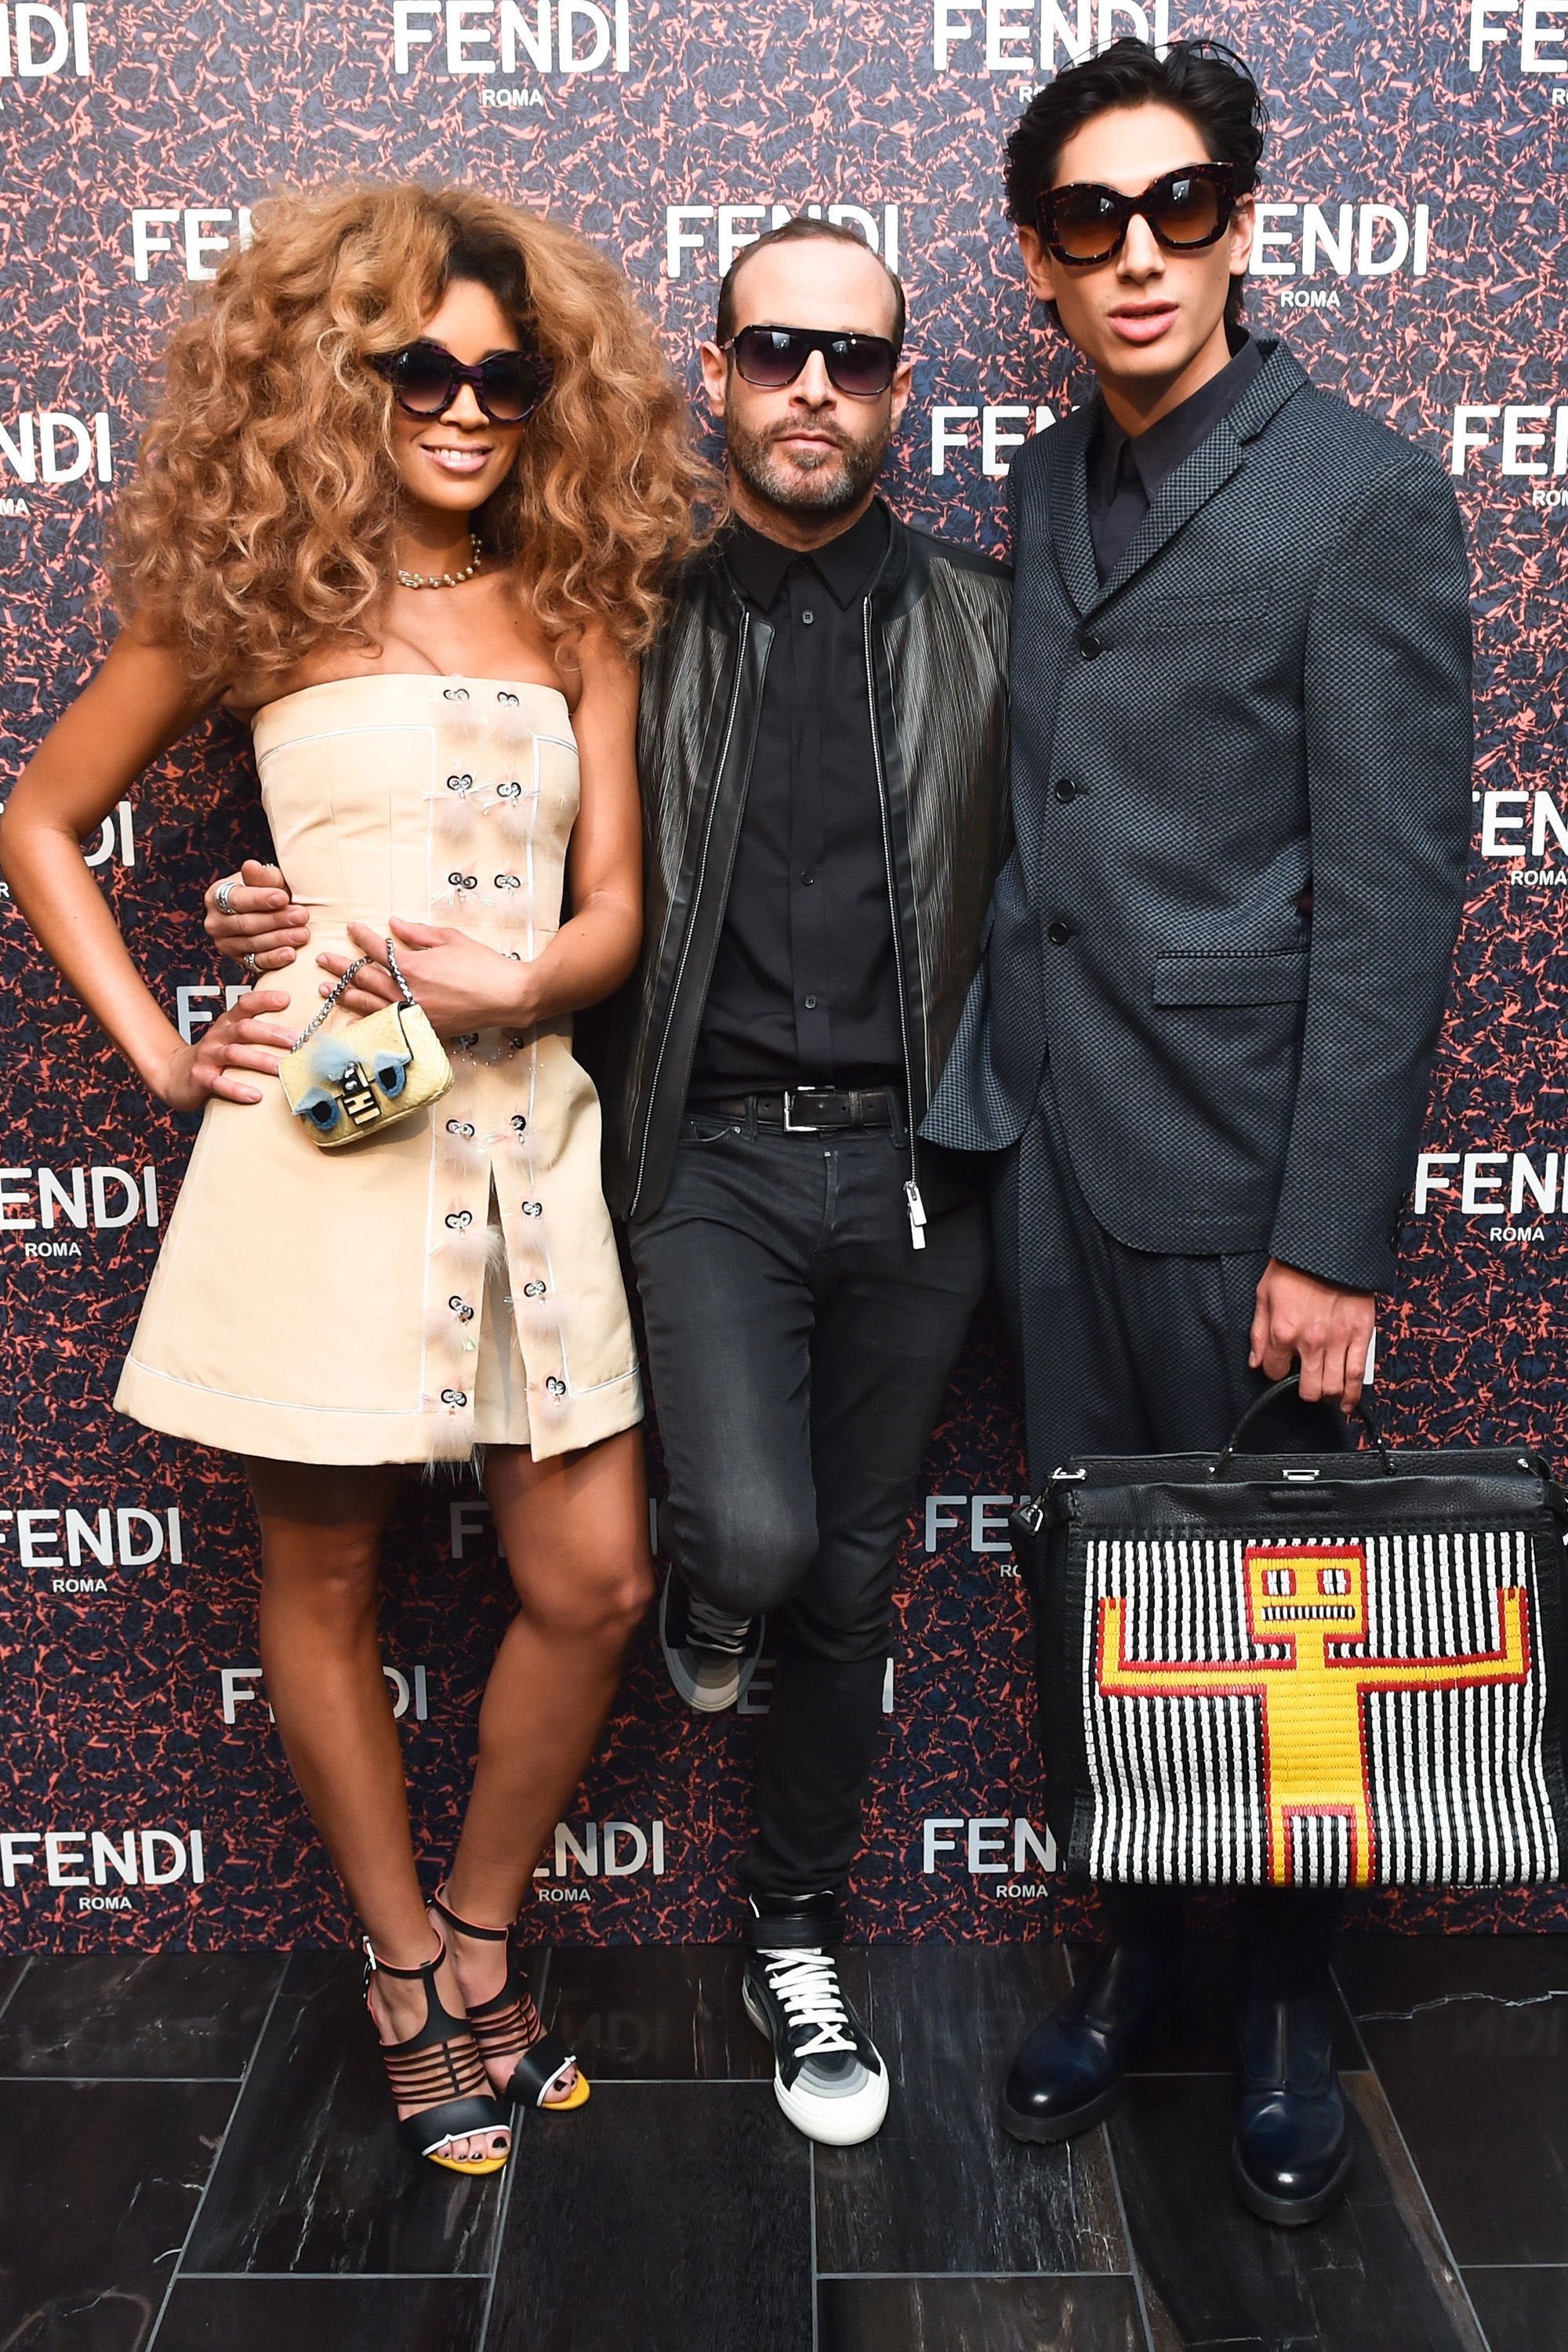 Jillian Hervey, Thierry Lasry, Lucas Goodman